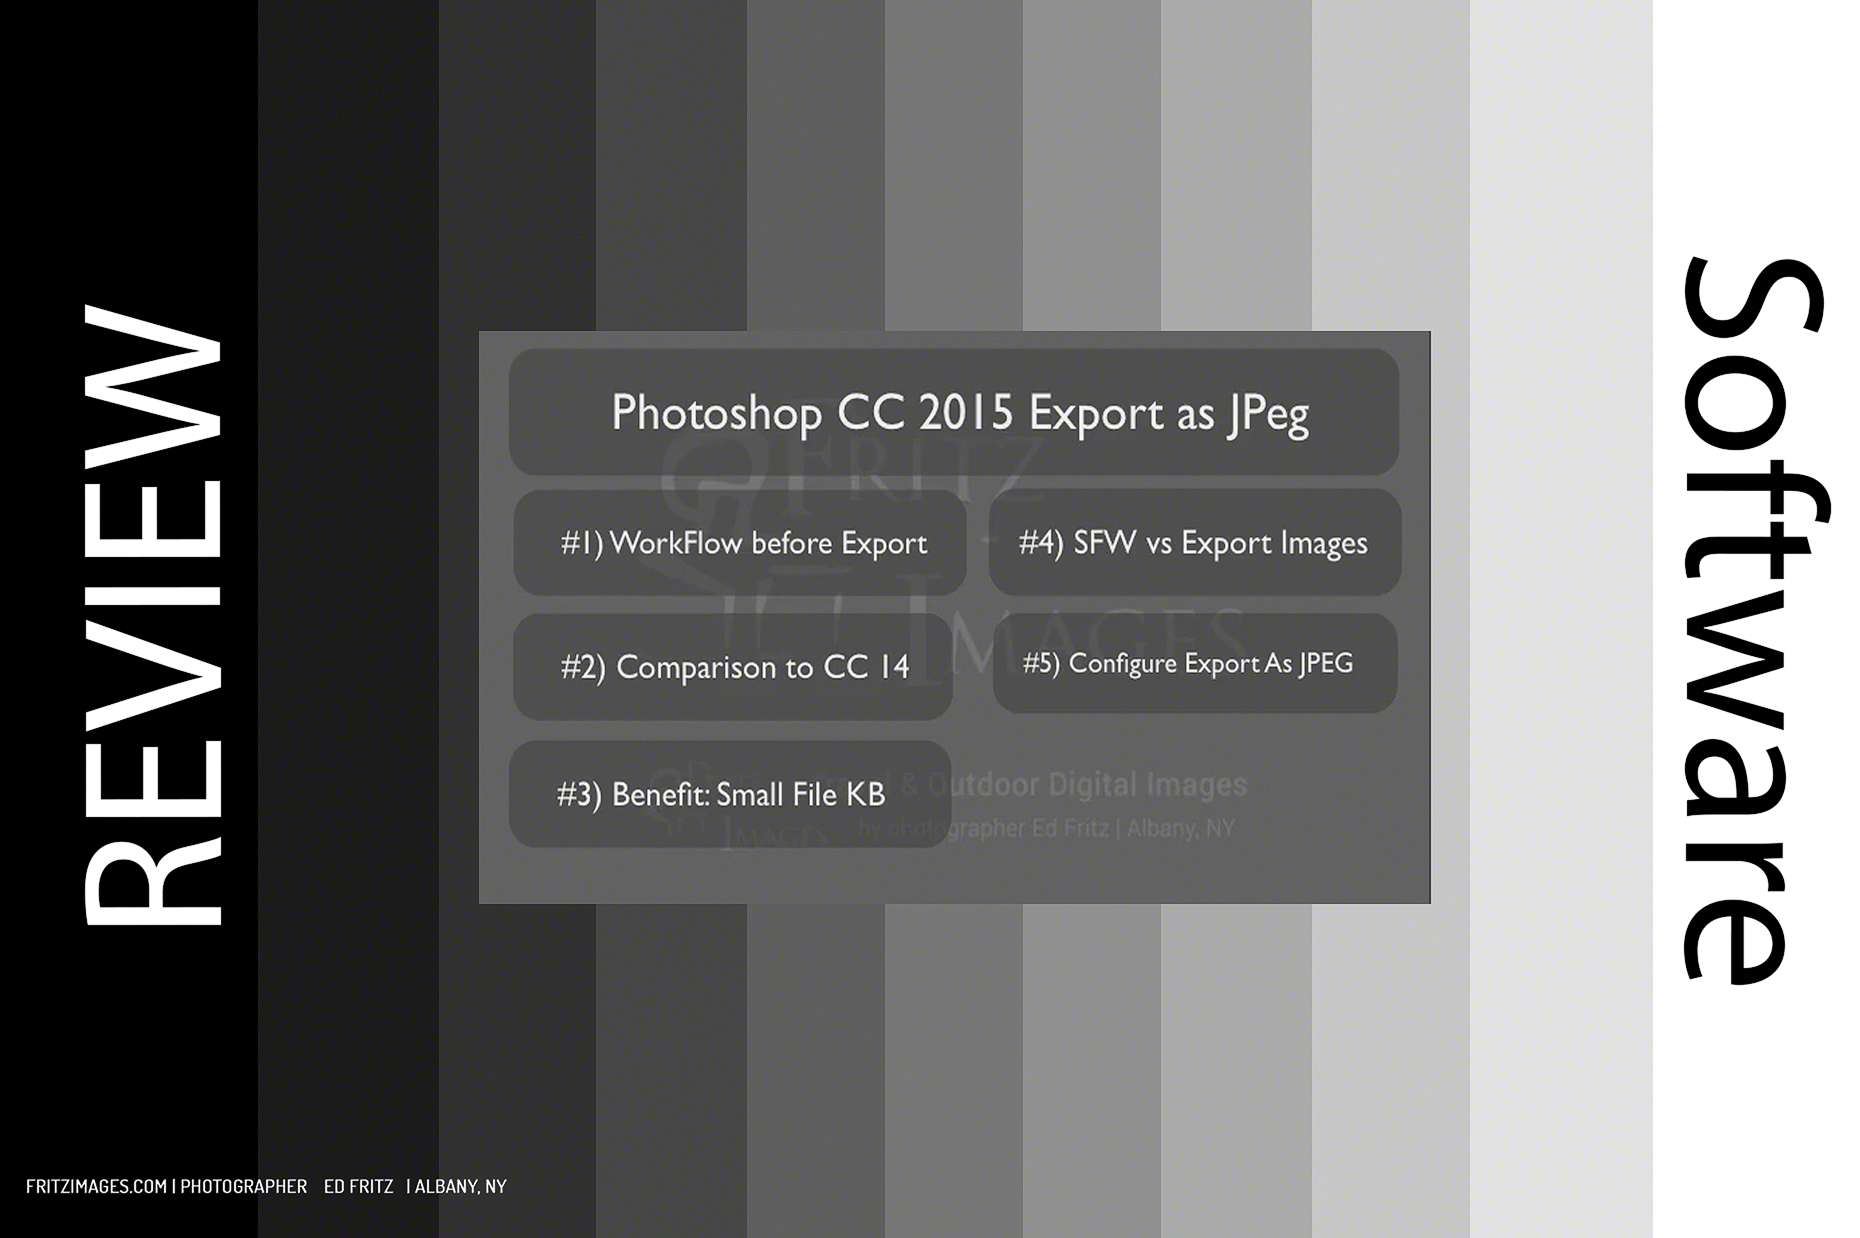 FritzImages | Travel and Outdoor Digital Images | image name = FIFP 20150621 Photoshop CC 2015 Export as Jpeg 1860